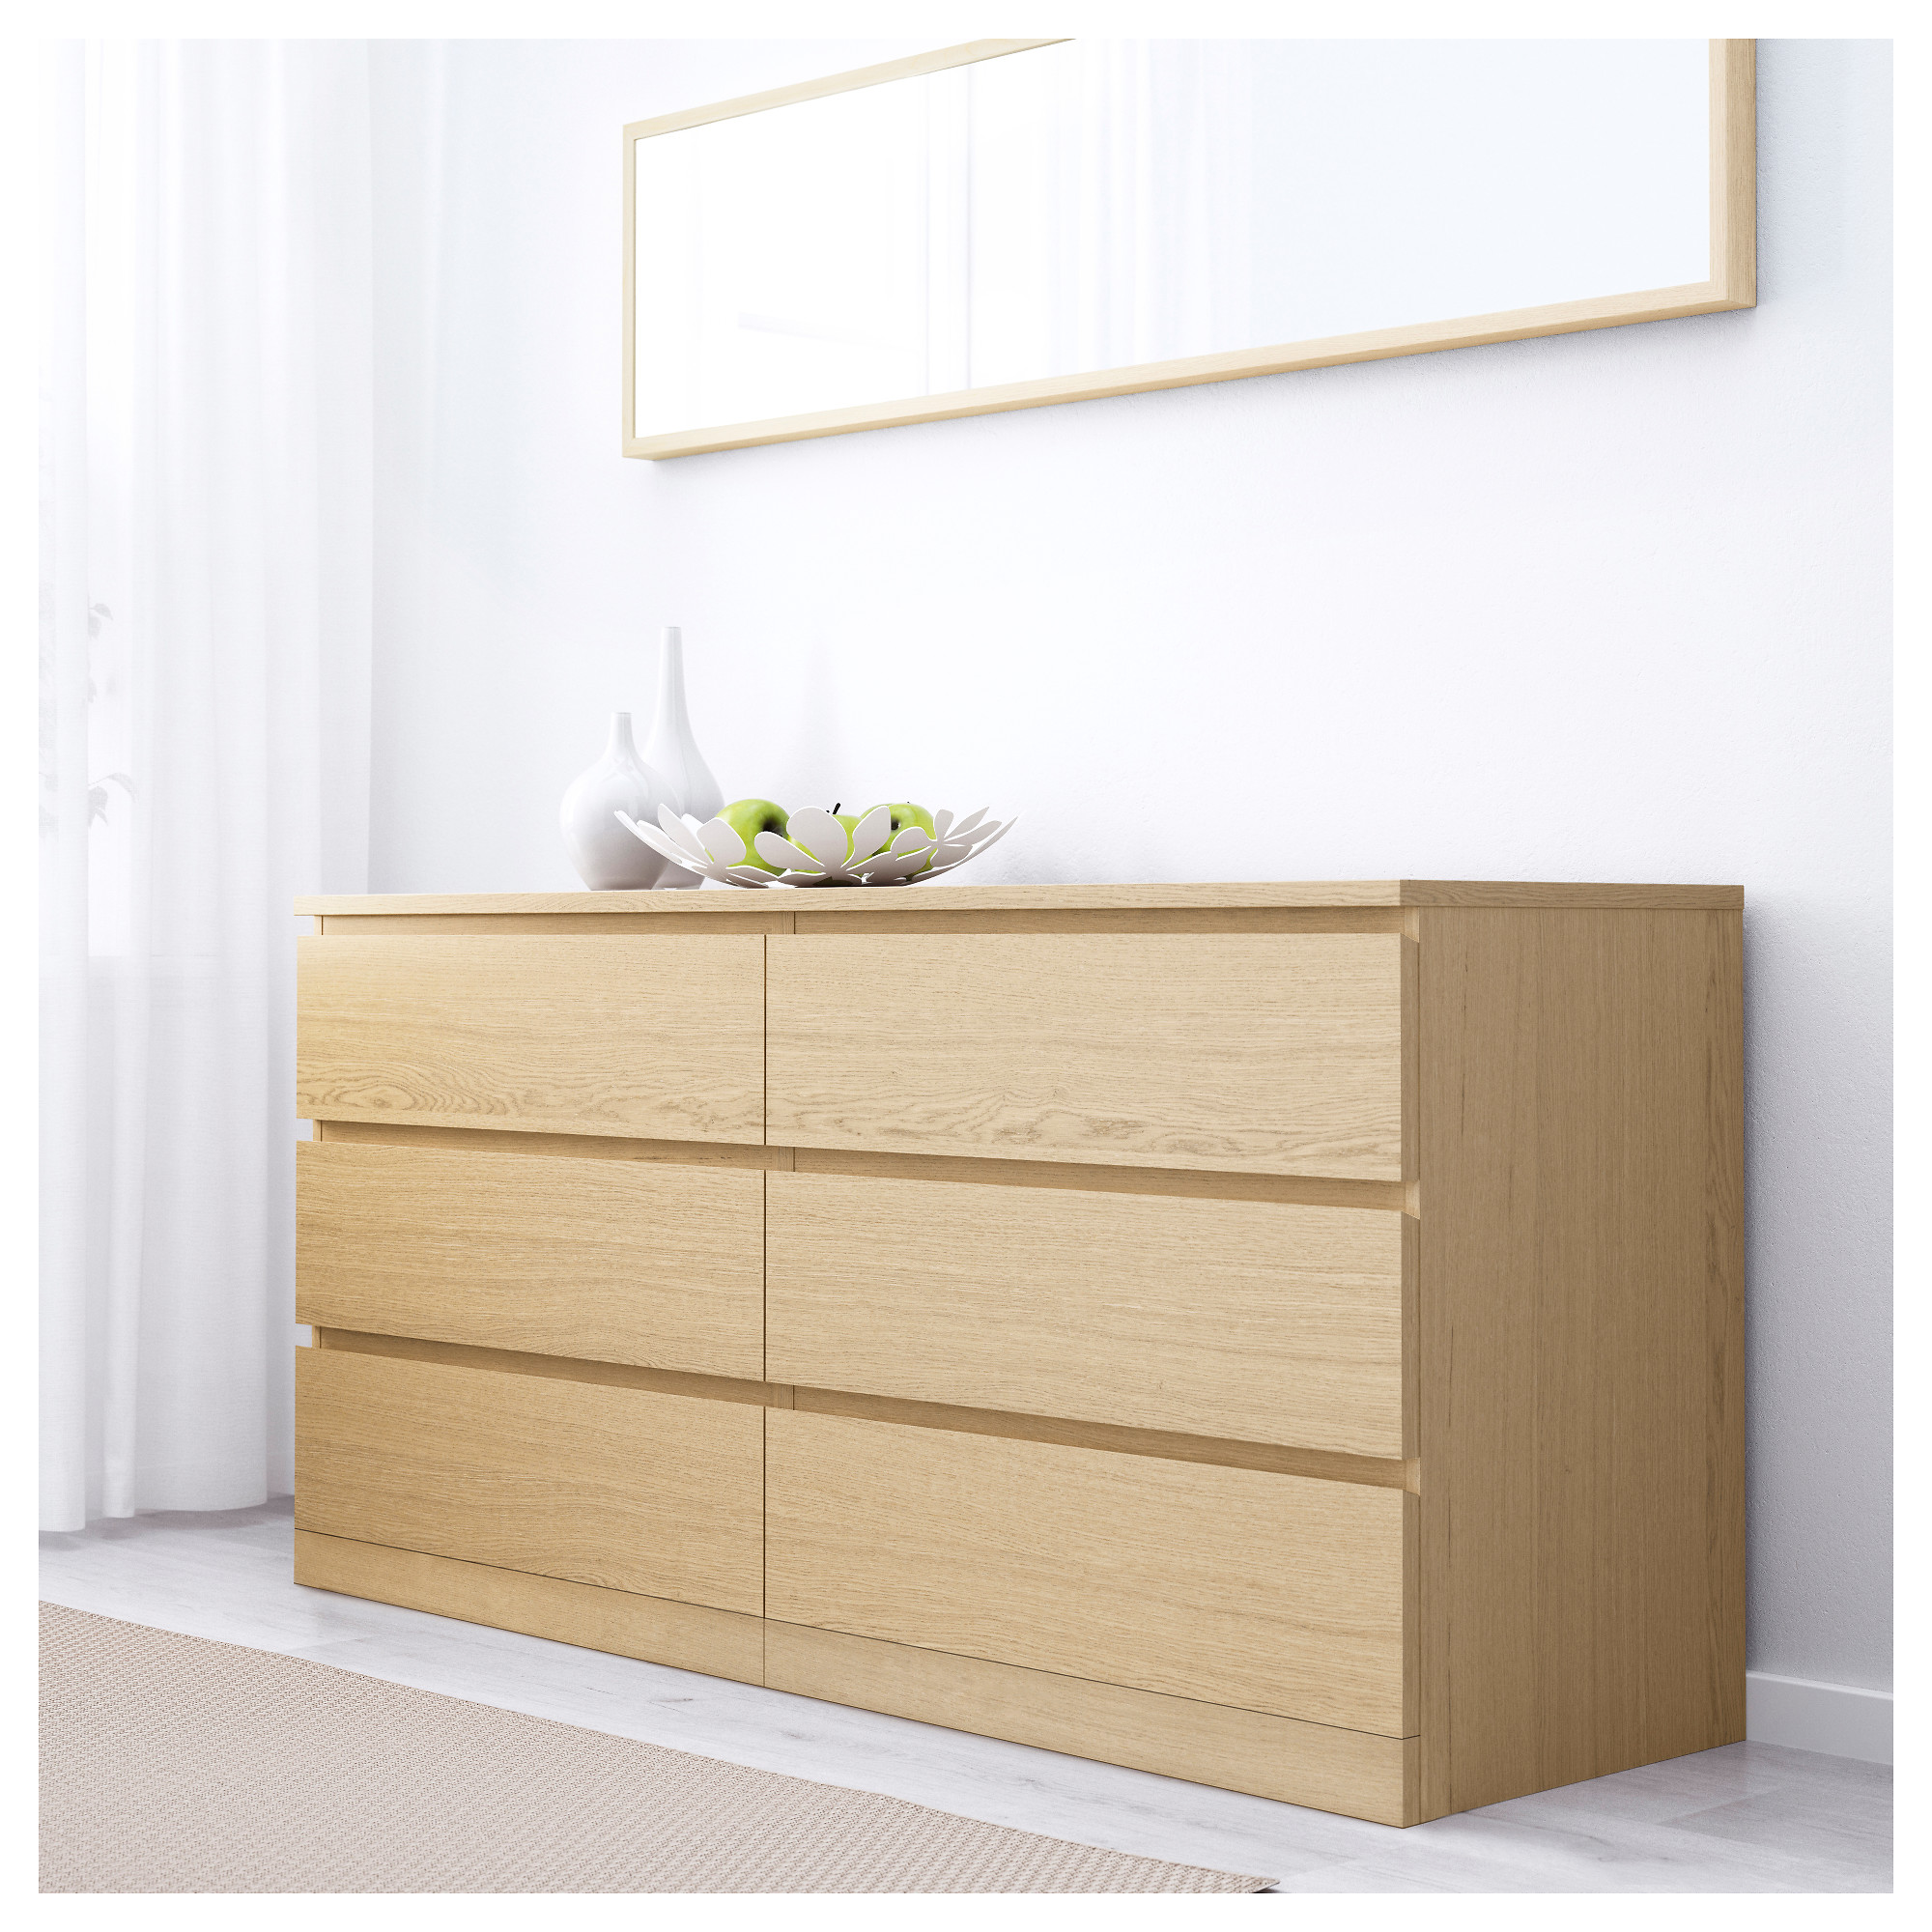 Superieur MALM Chest Of 6 Drawers   White   IKEA